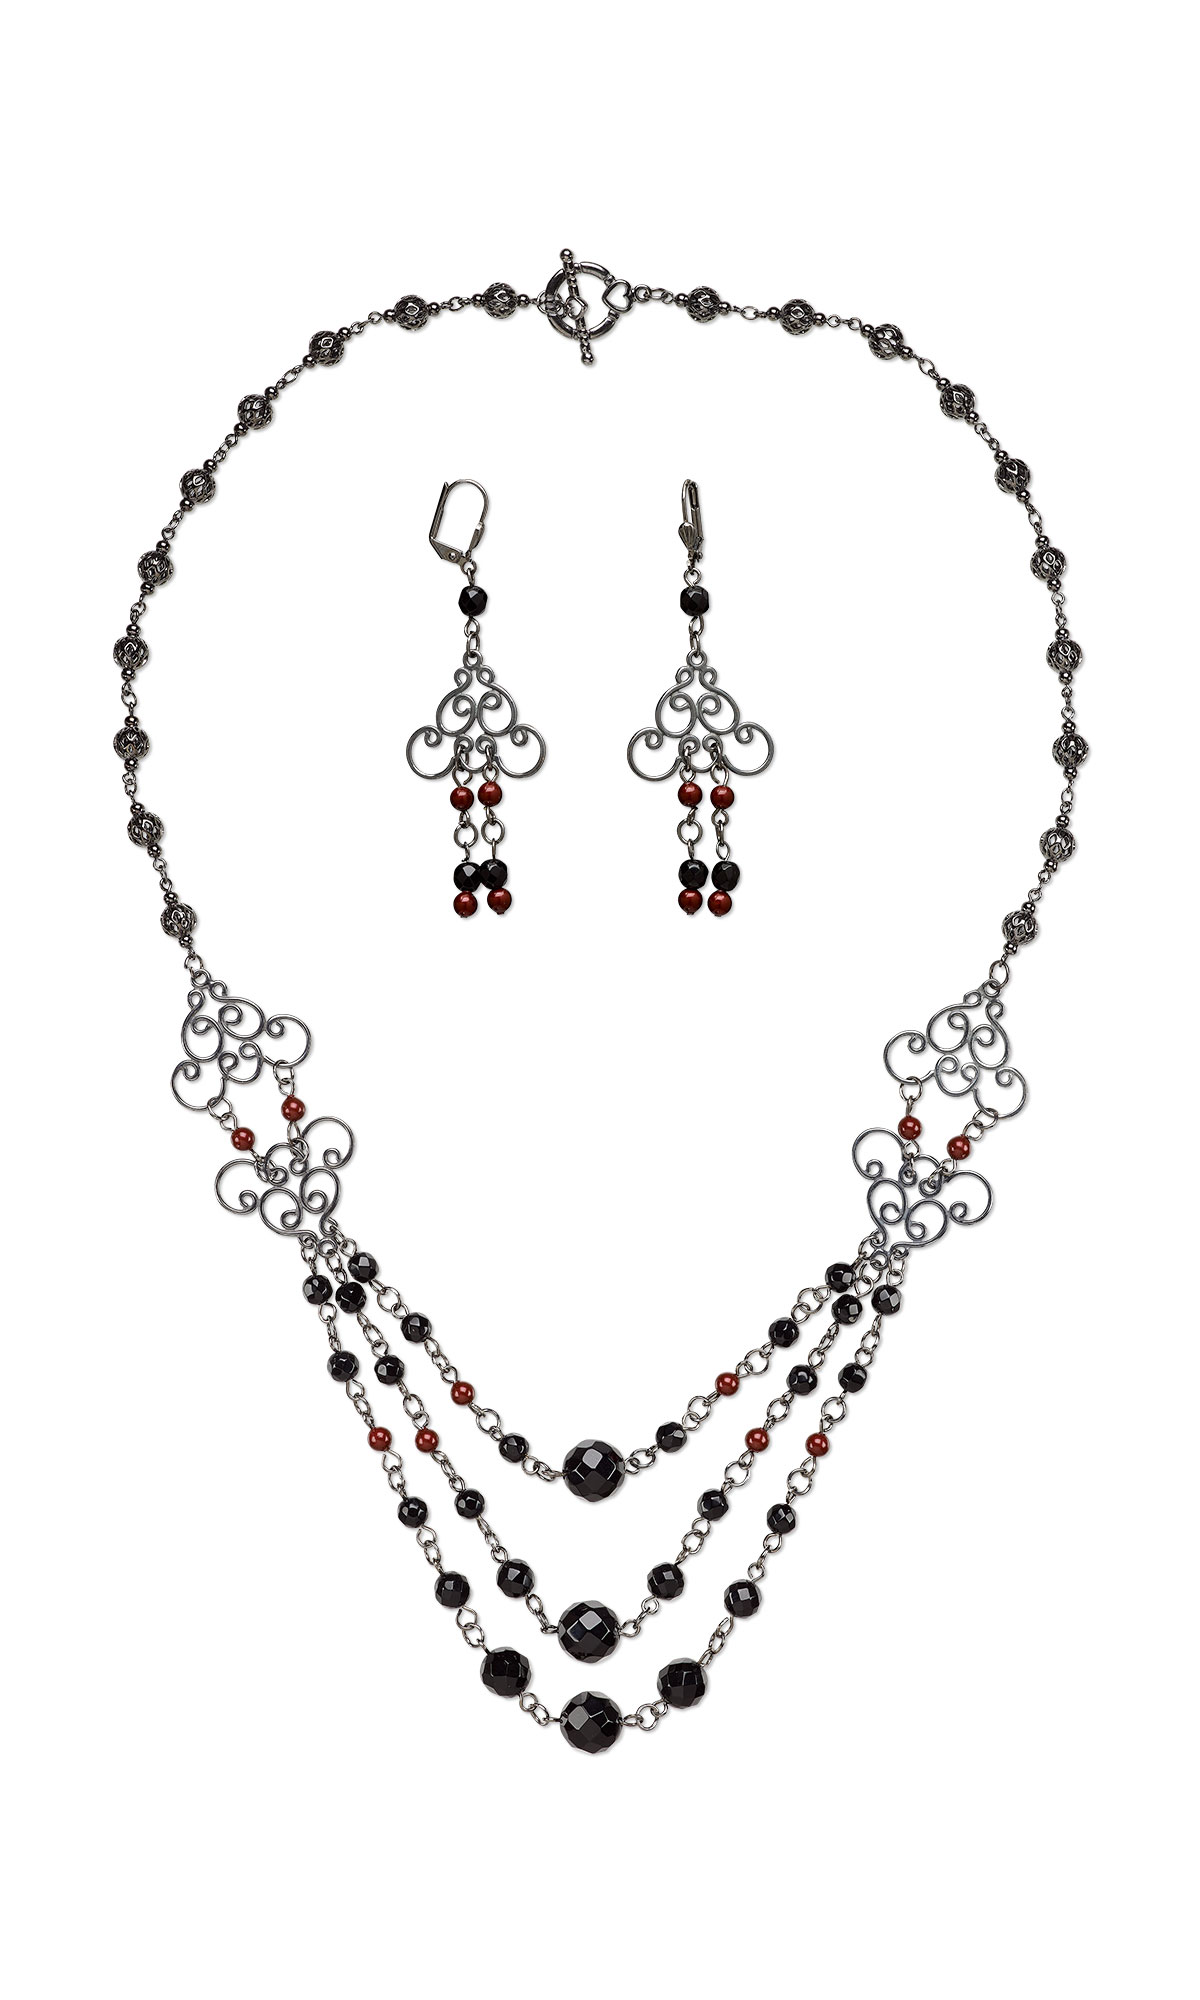 Jewelry Design - Triple-Strand Necklace and Earring Set with Black ...